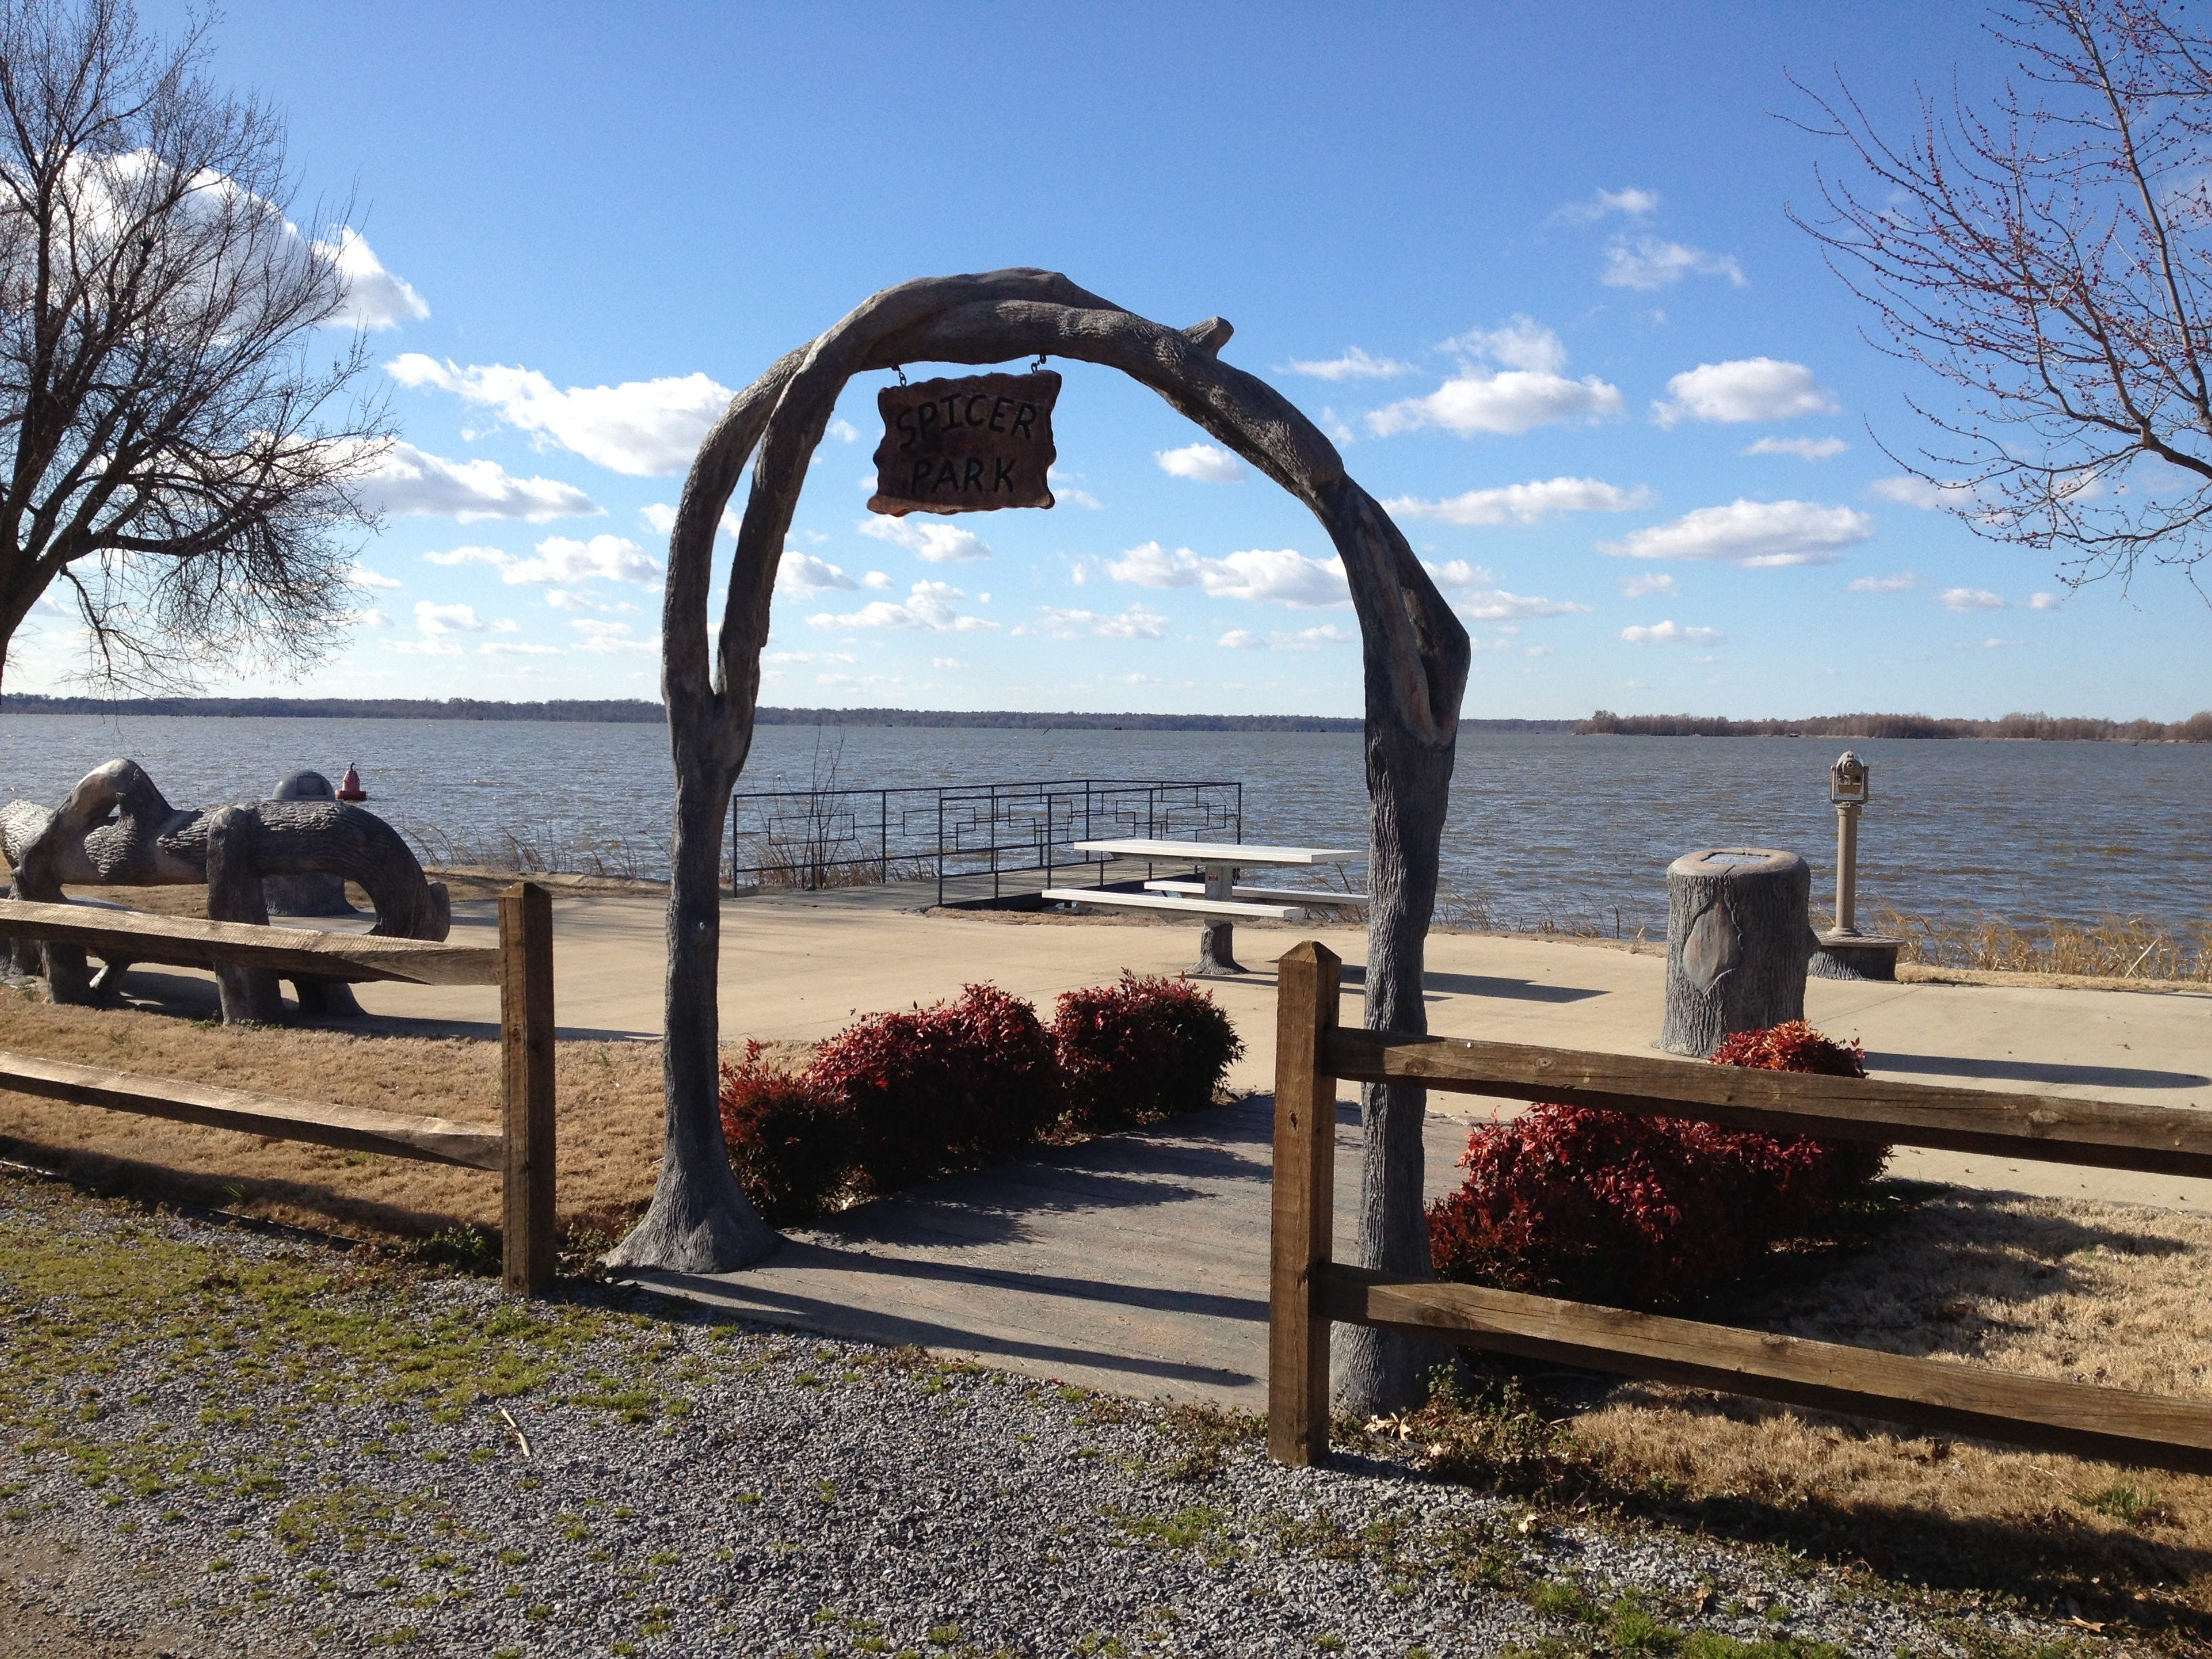 Walkways and sitting areas offer spots for visitors to take in vistas of Reelfoot Lake.